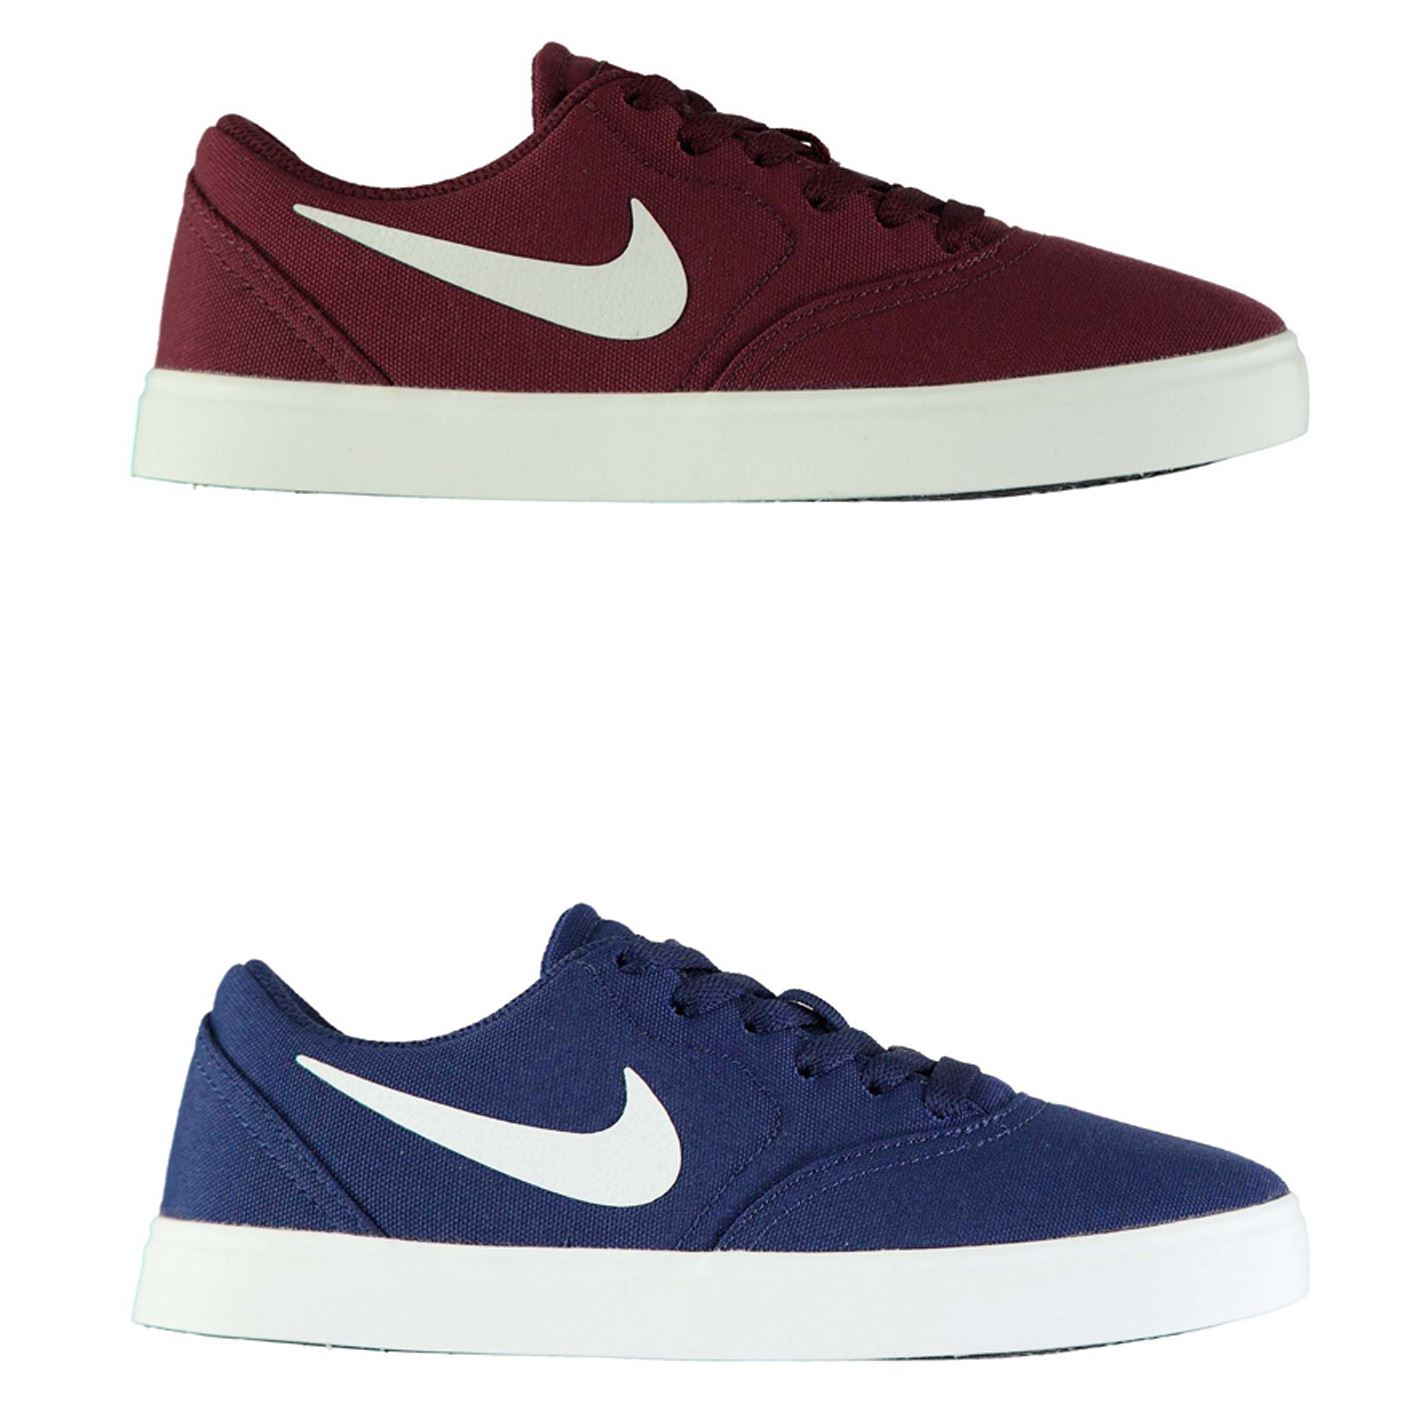 info for 34918 78e48 ... Nike SB Check Canvas Skate Shoes Junior Boys Trainers Footwear ...